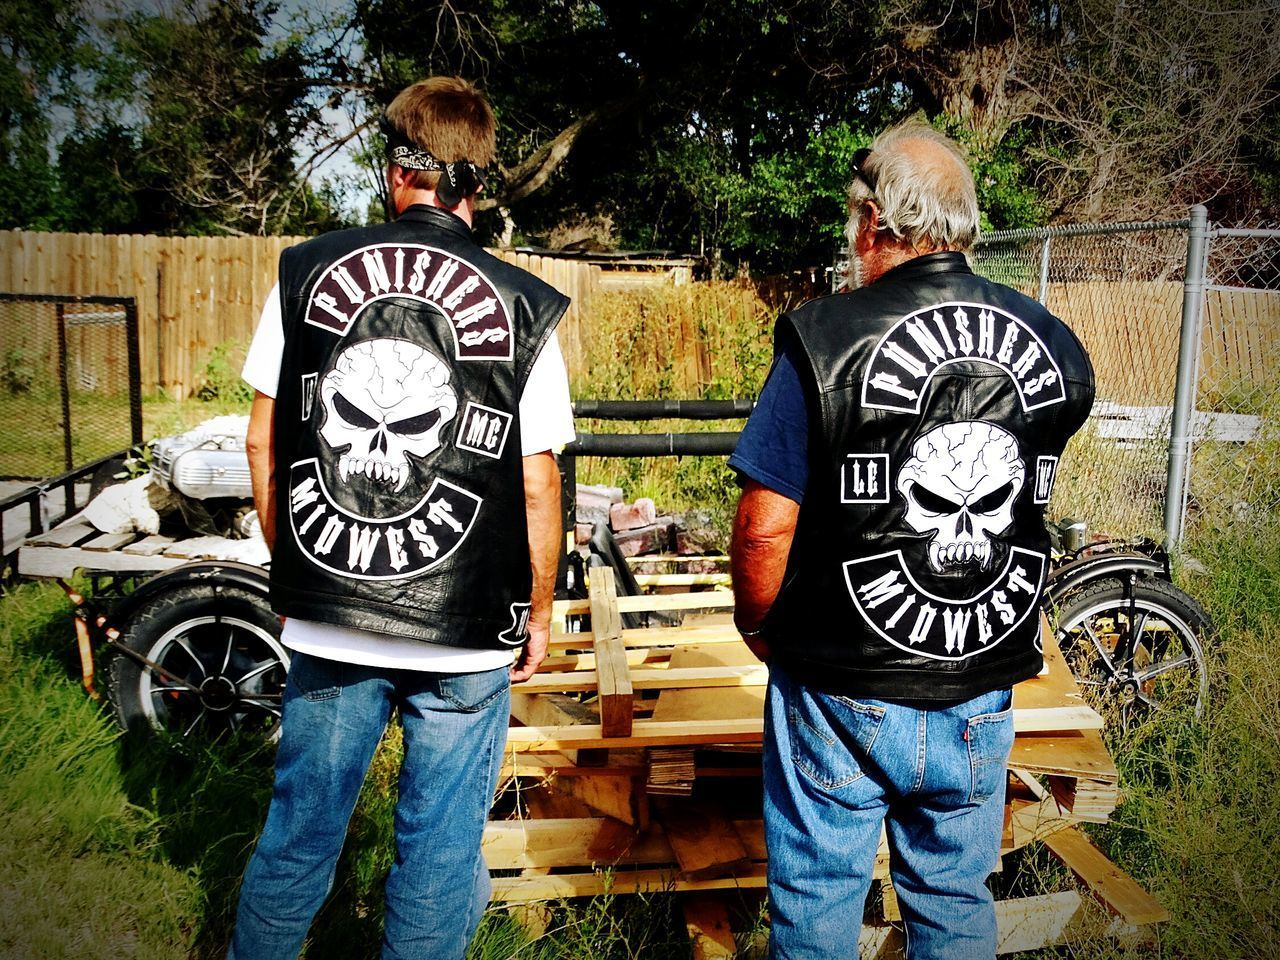 Standing Bonding Togetherness Casual Biker Life Bikers Brotherhood Mc Bikers Contemplating